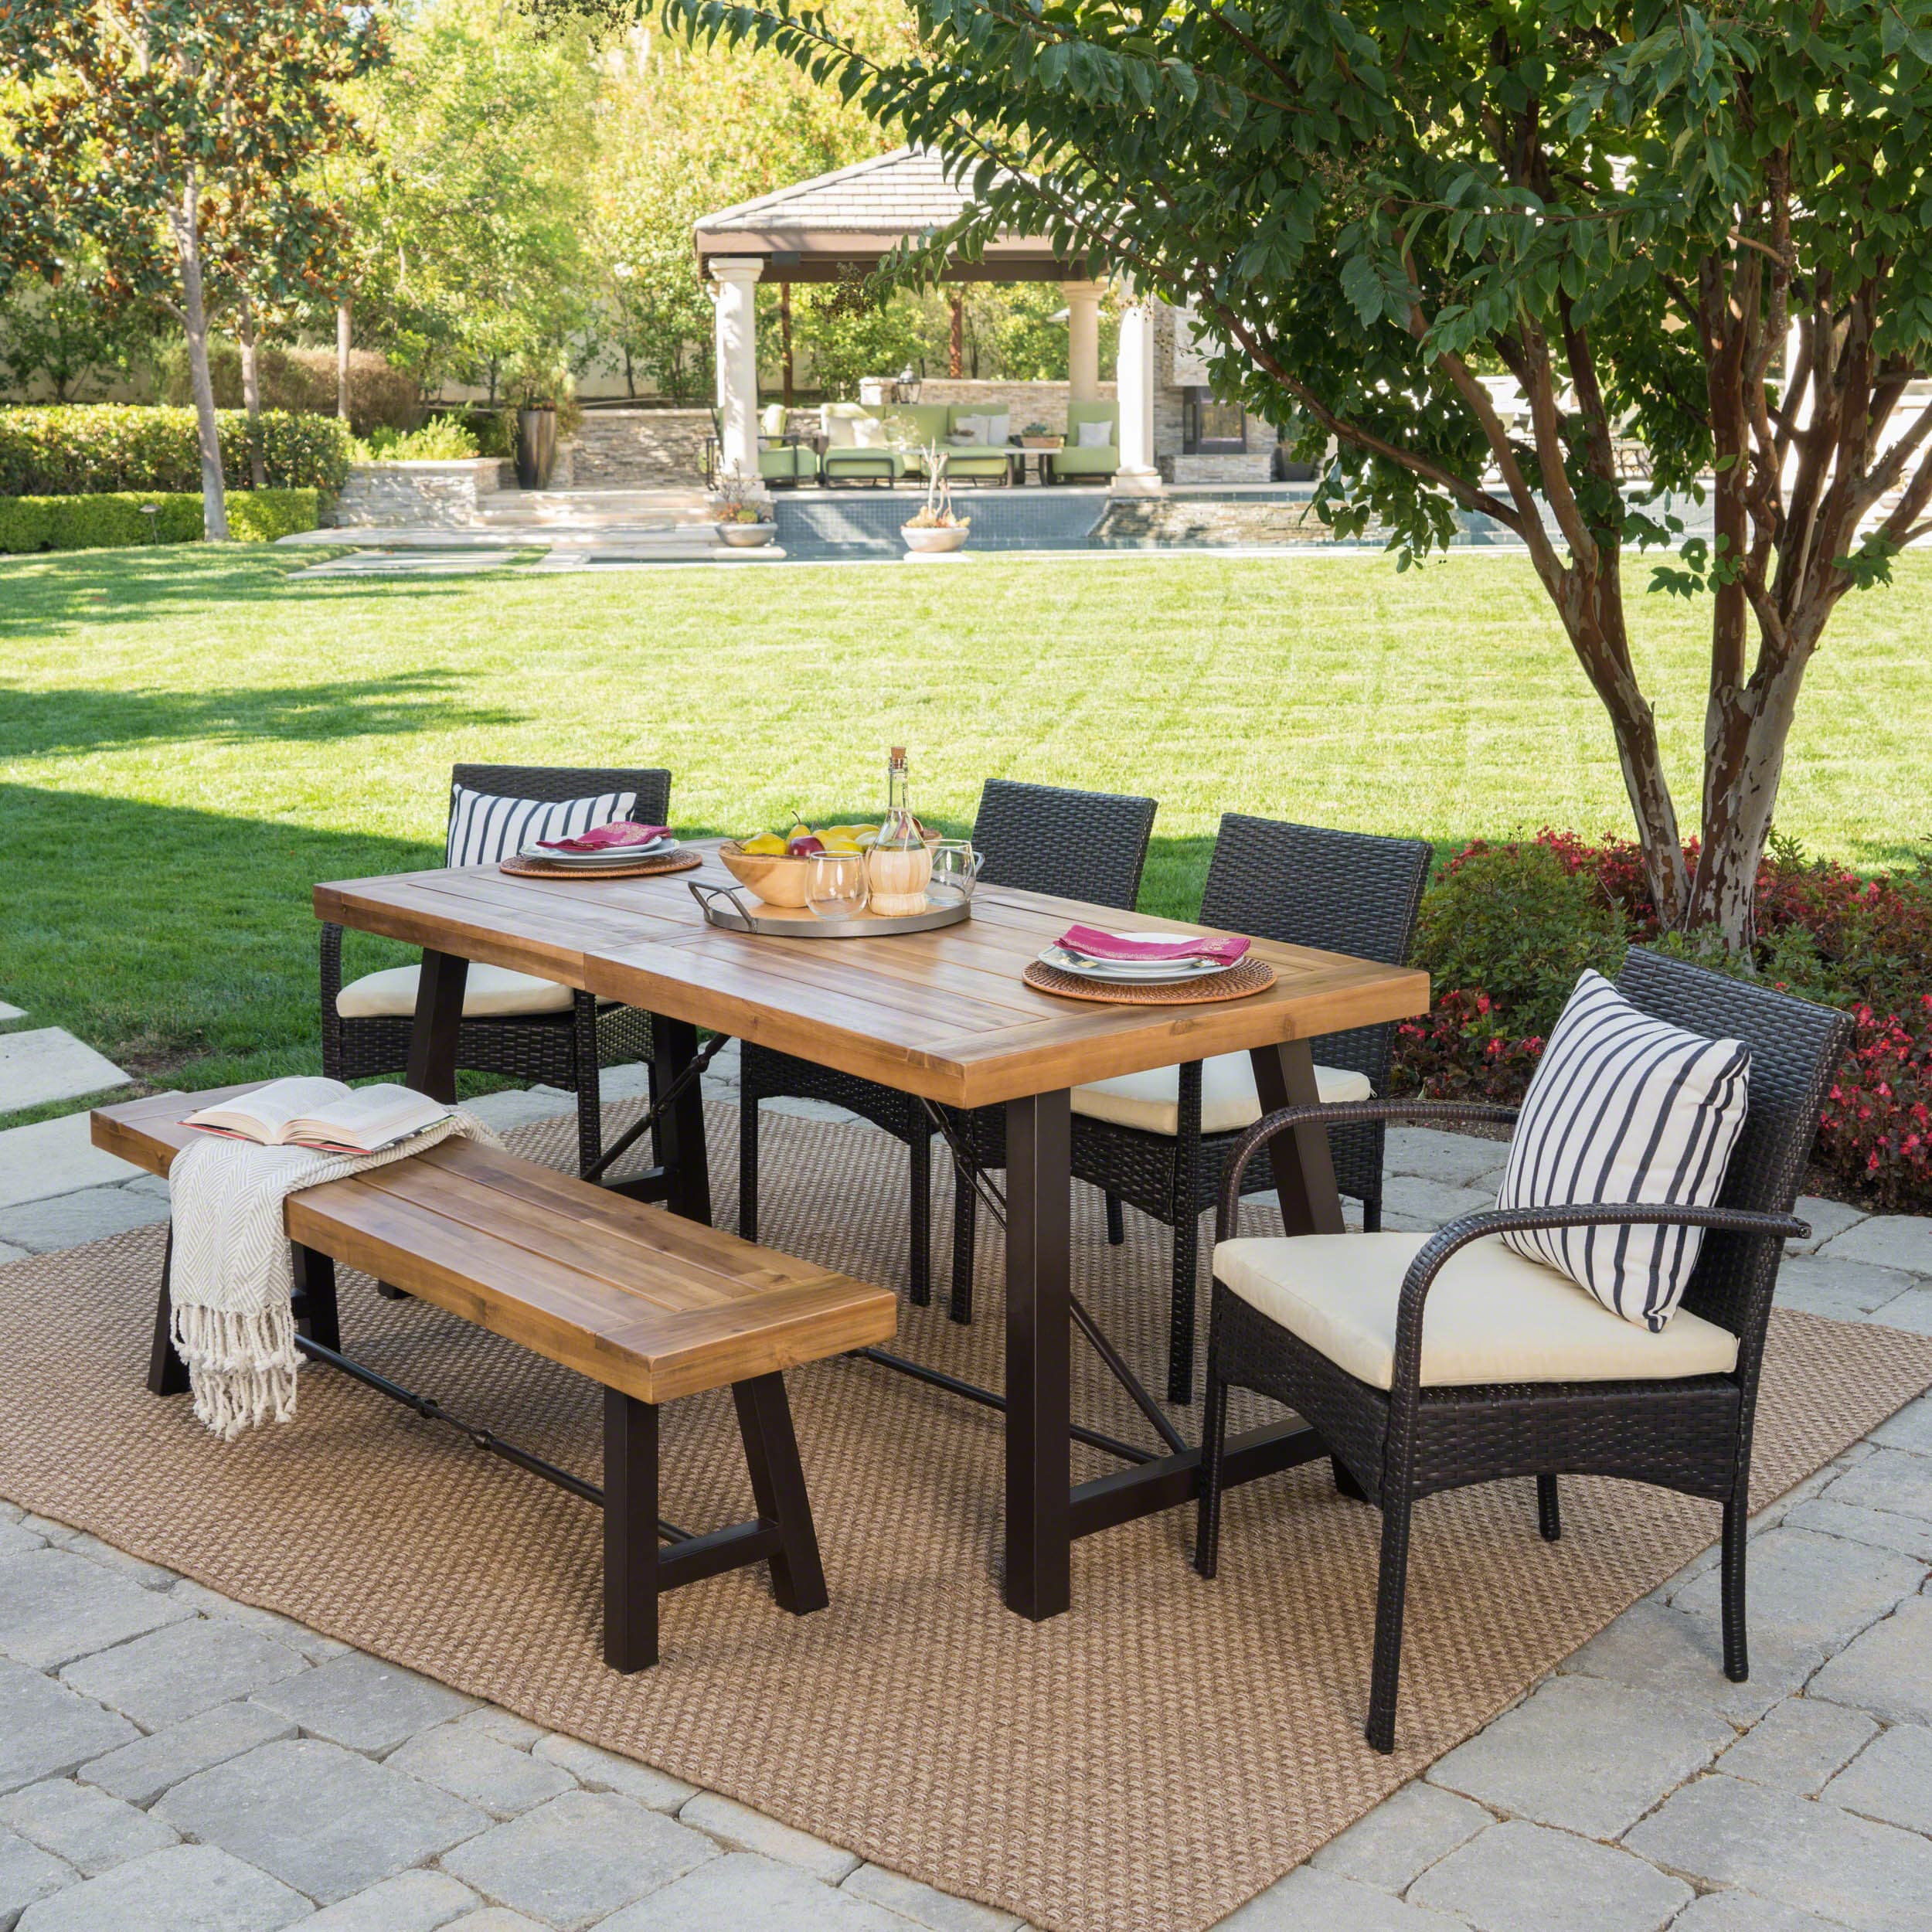 Genial Betsys Outdoor 6 Piece Rectangle Wicker Wood Dining Set With Cushions By  Christopher Knight Home